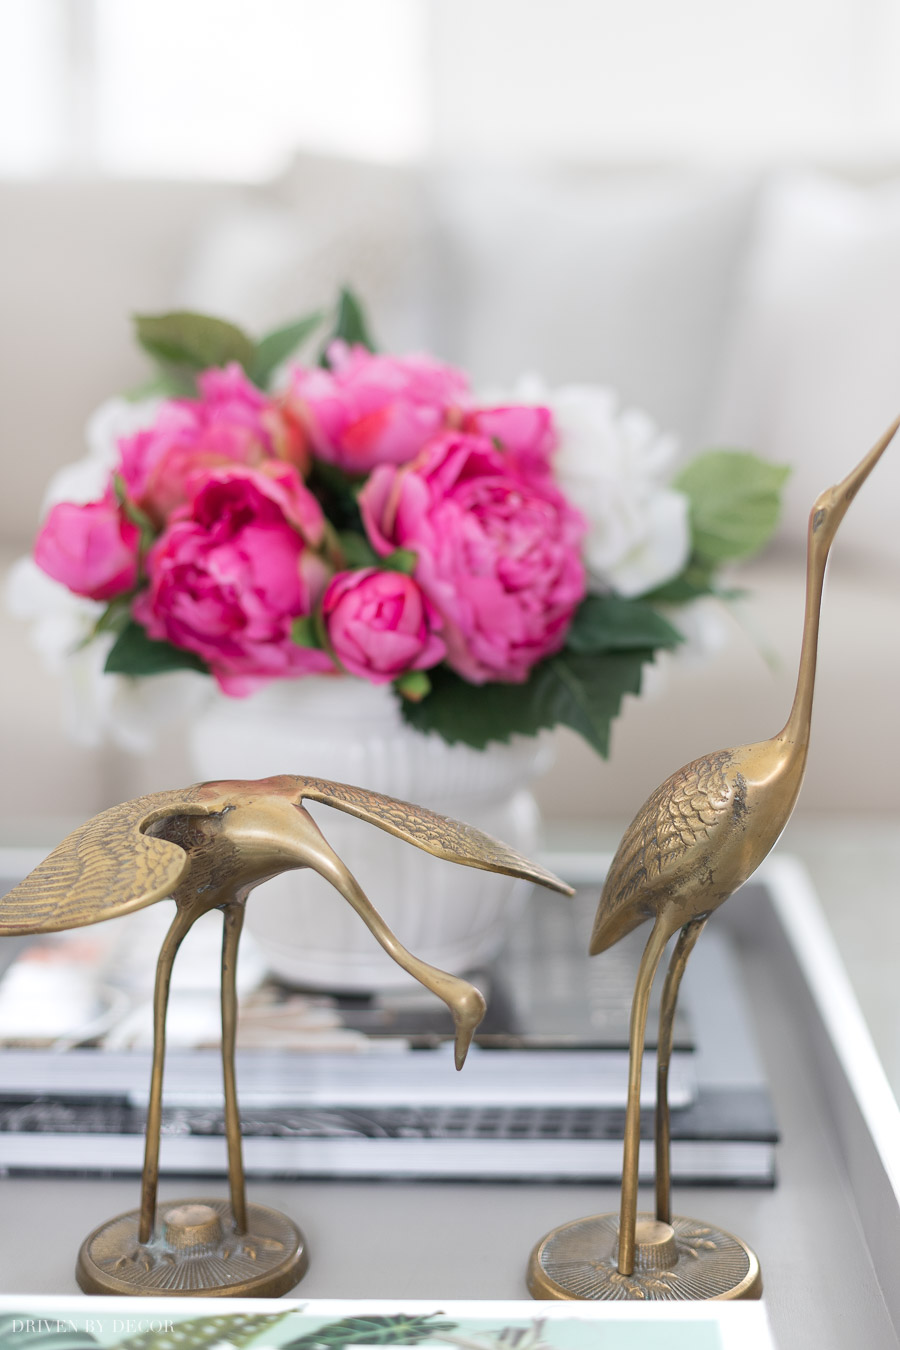 A pair of vintage brass cranes used as coffee table decor